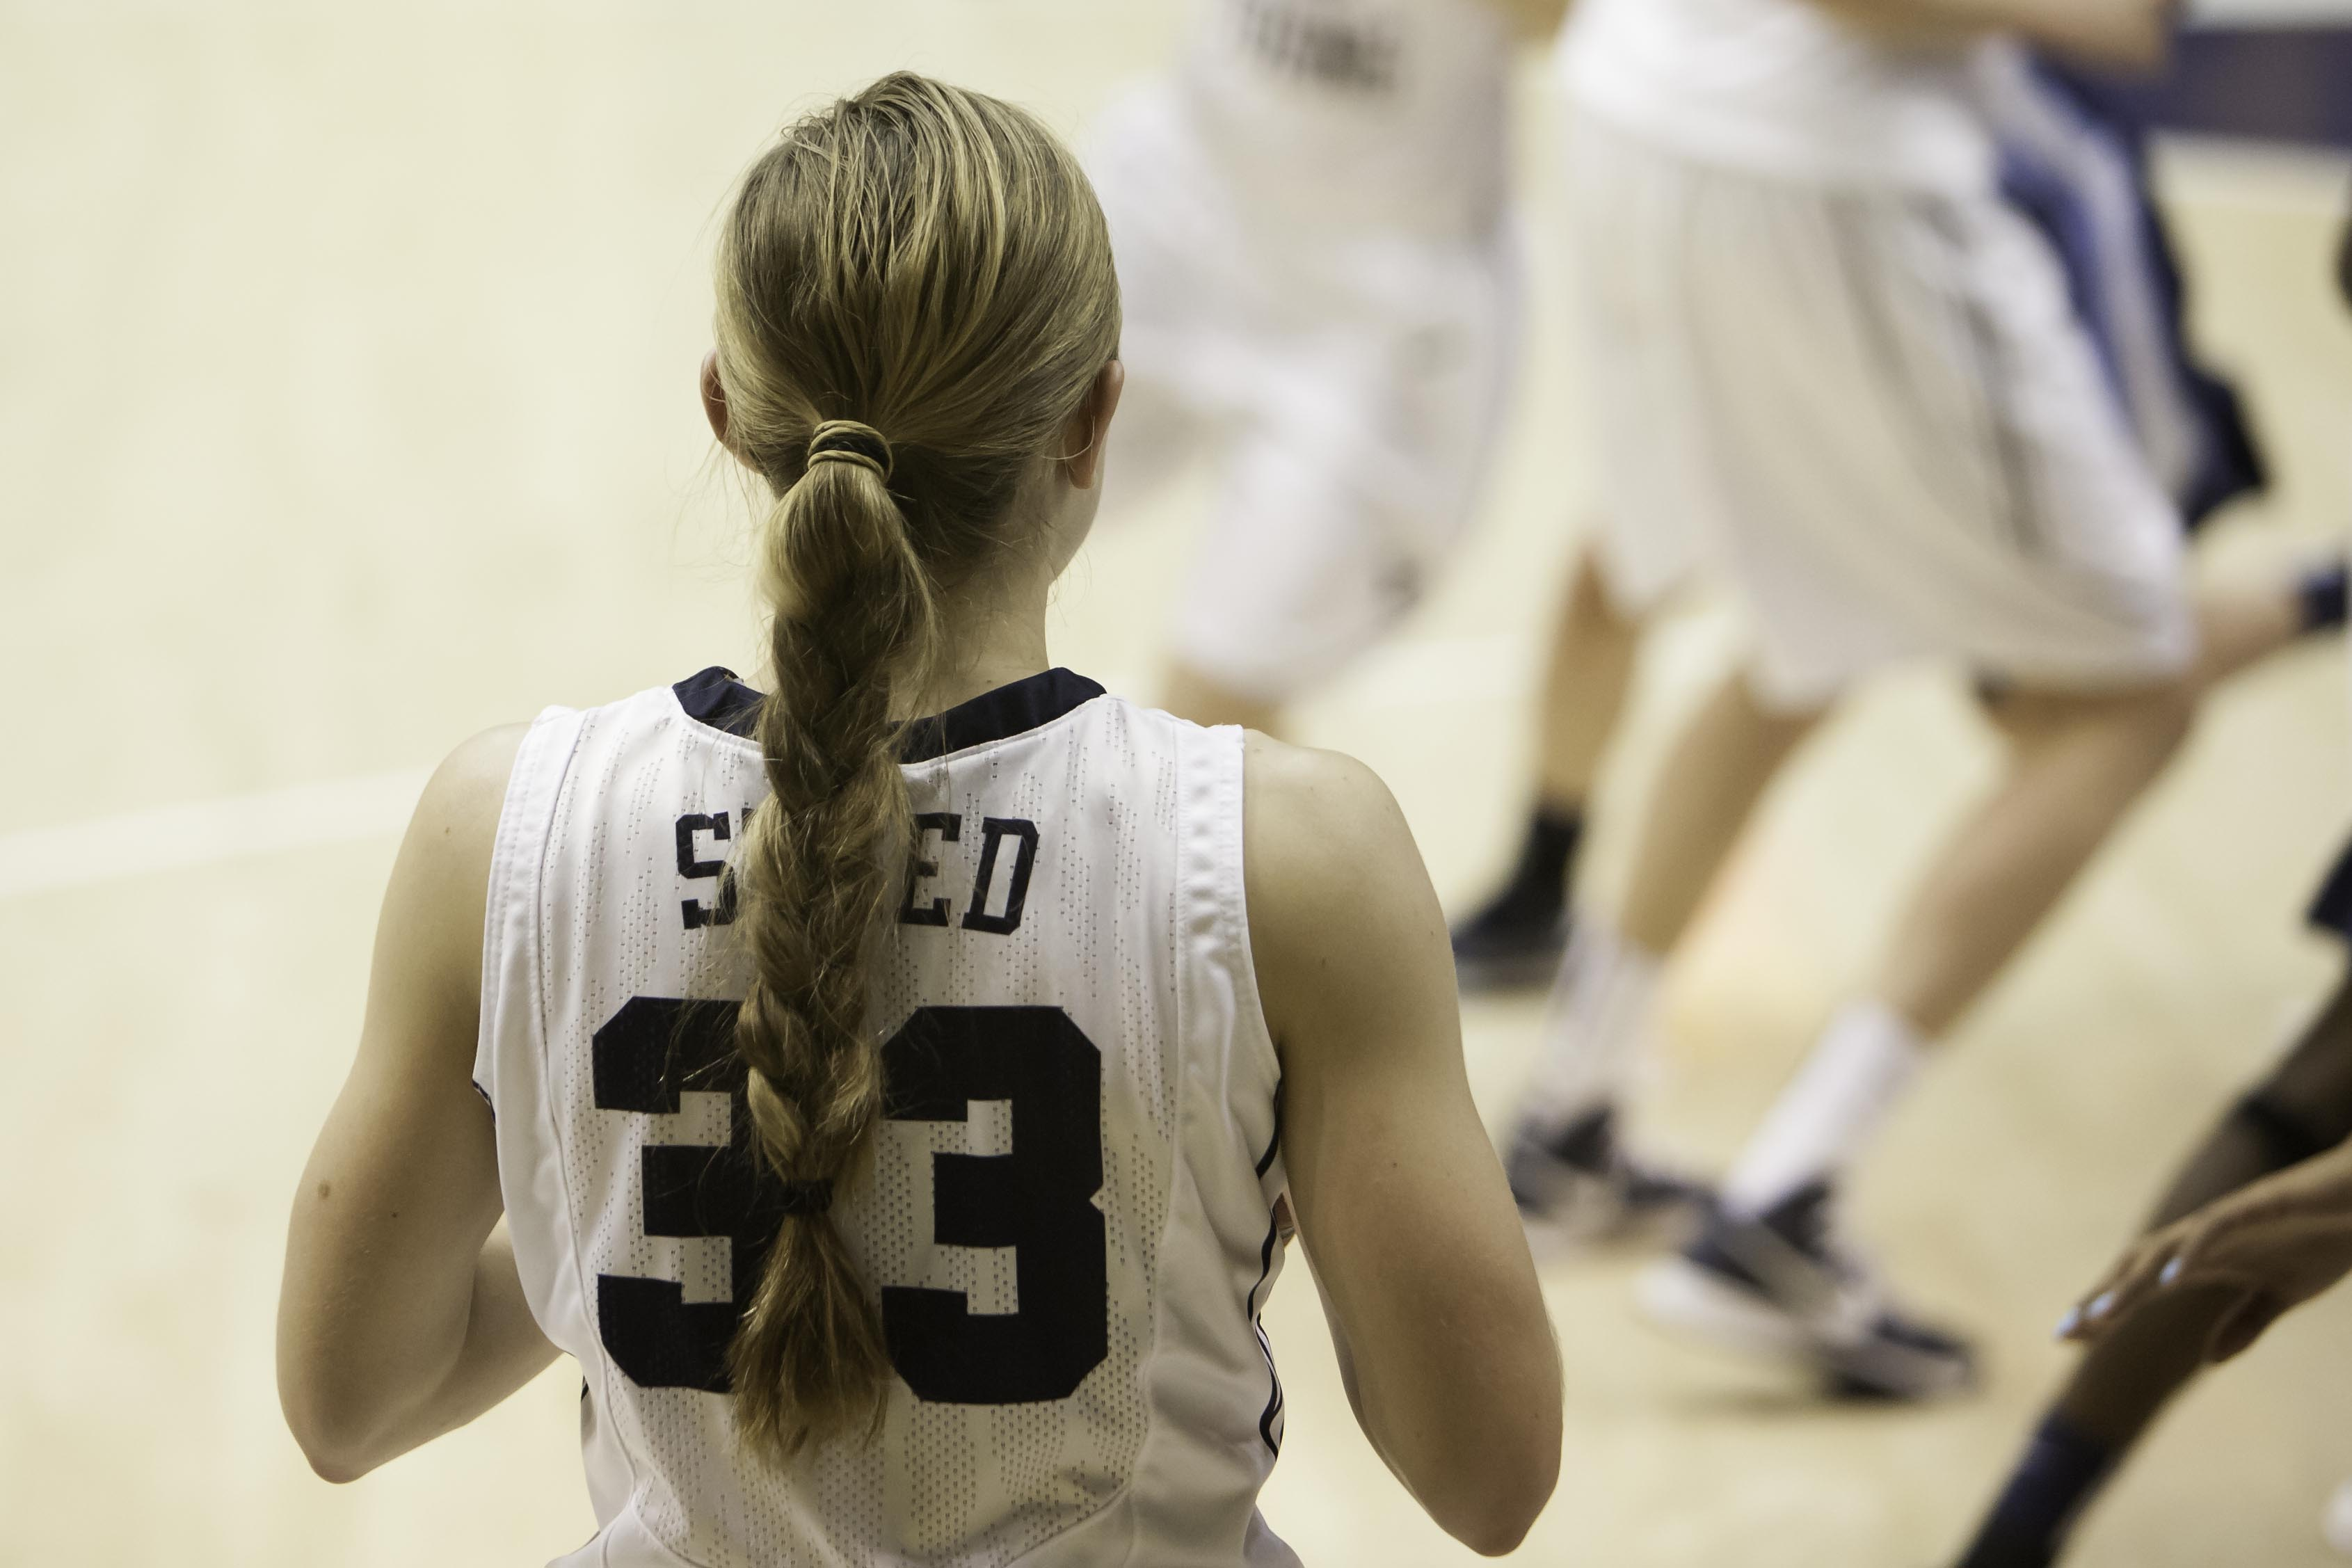 Haley Steed setting up the team in a game against San Diego earlier this season. (Photo by Elliott Miller)